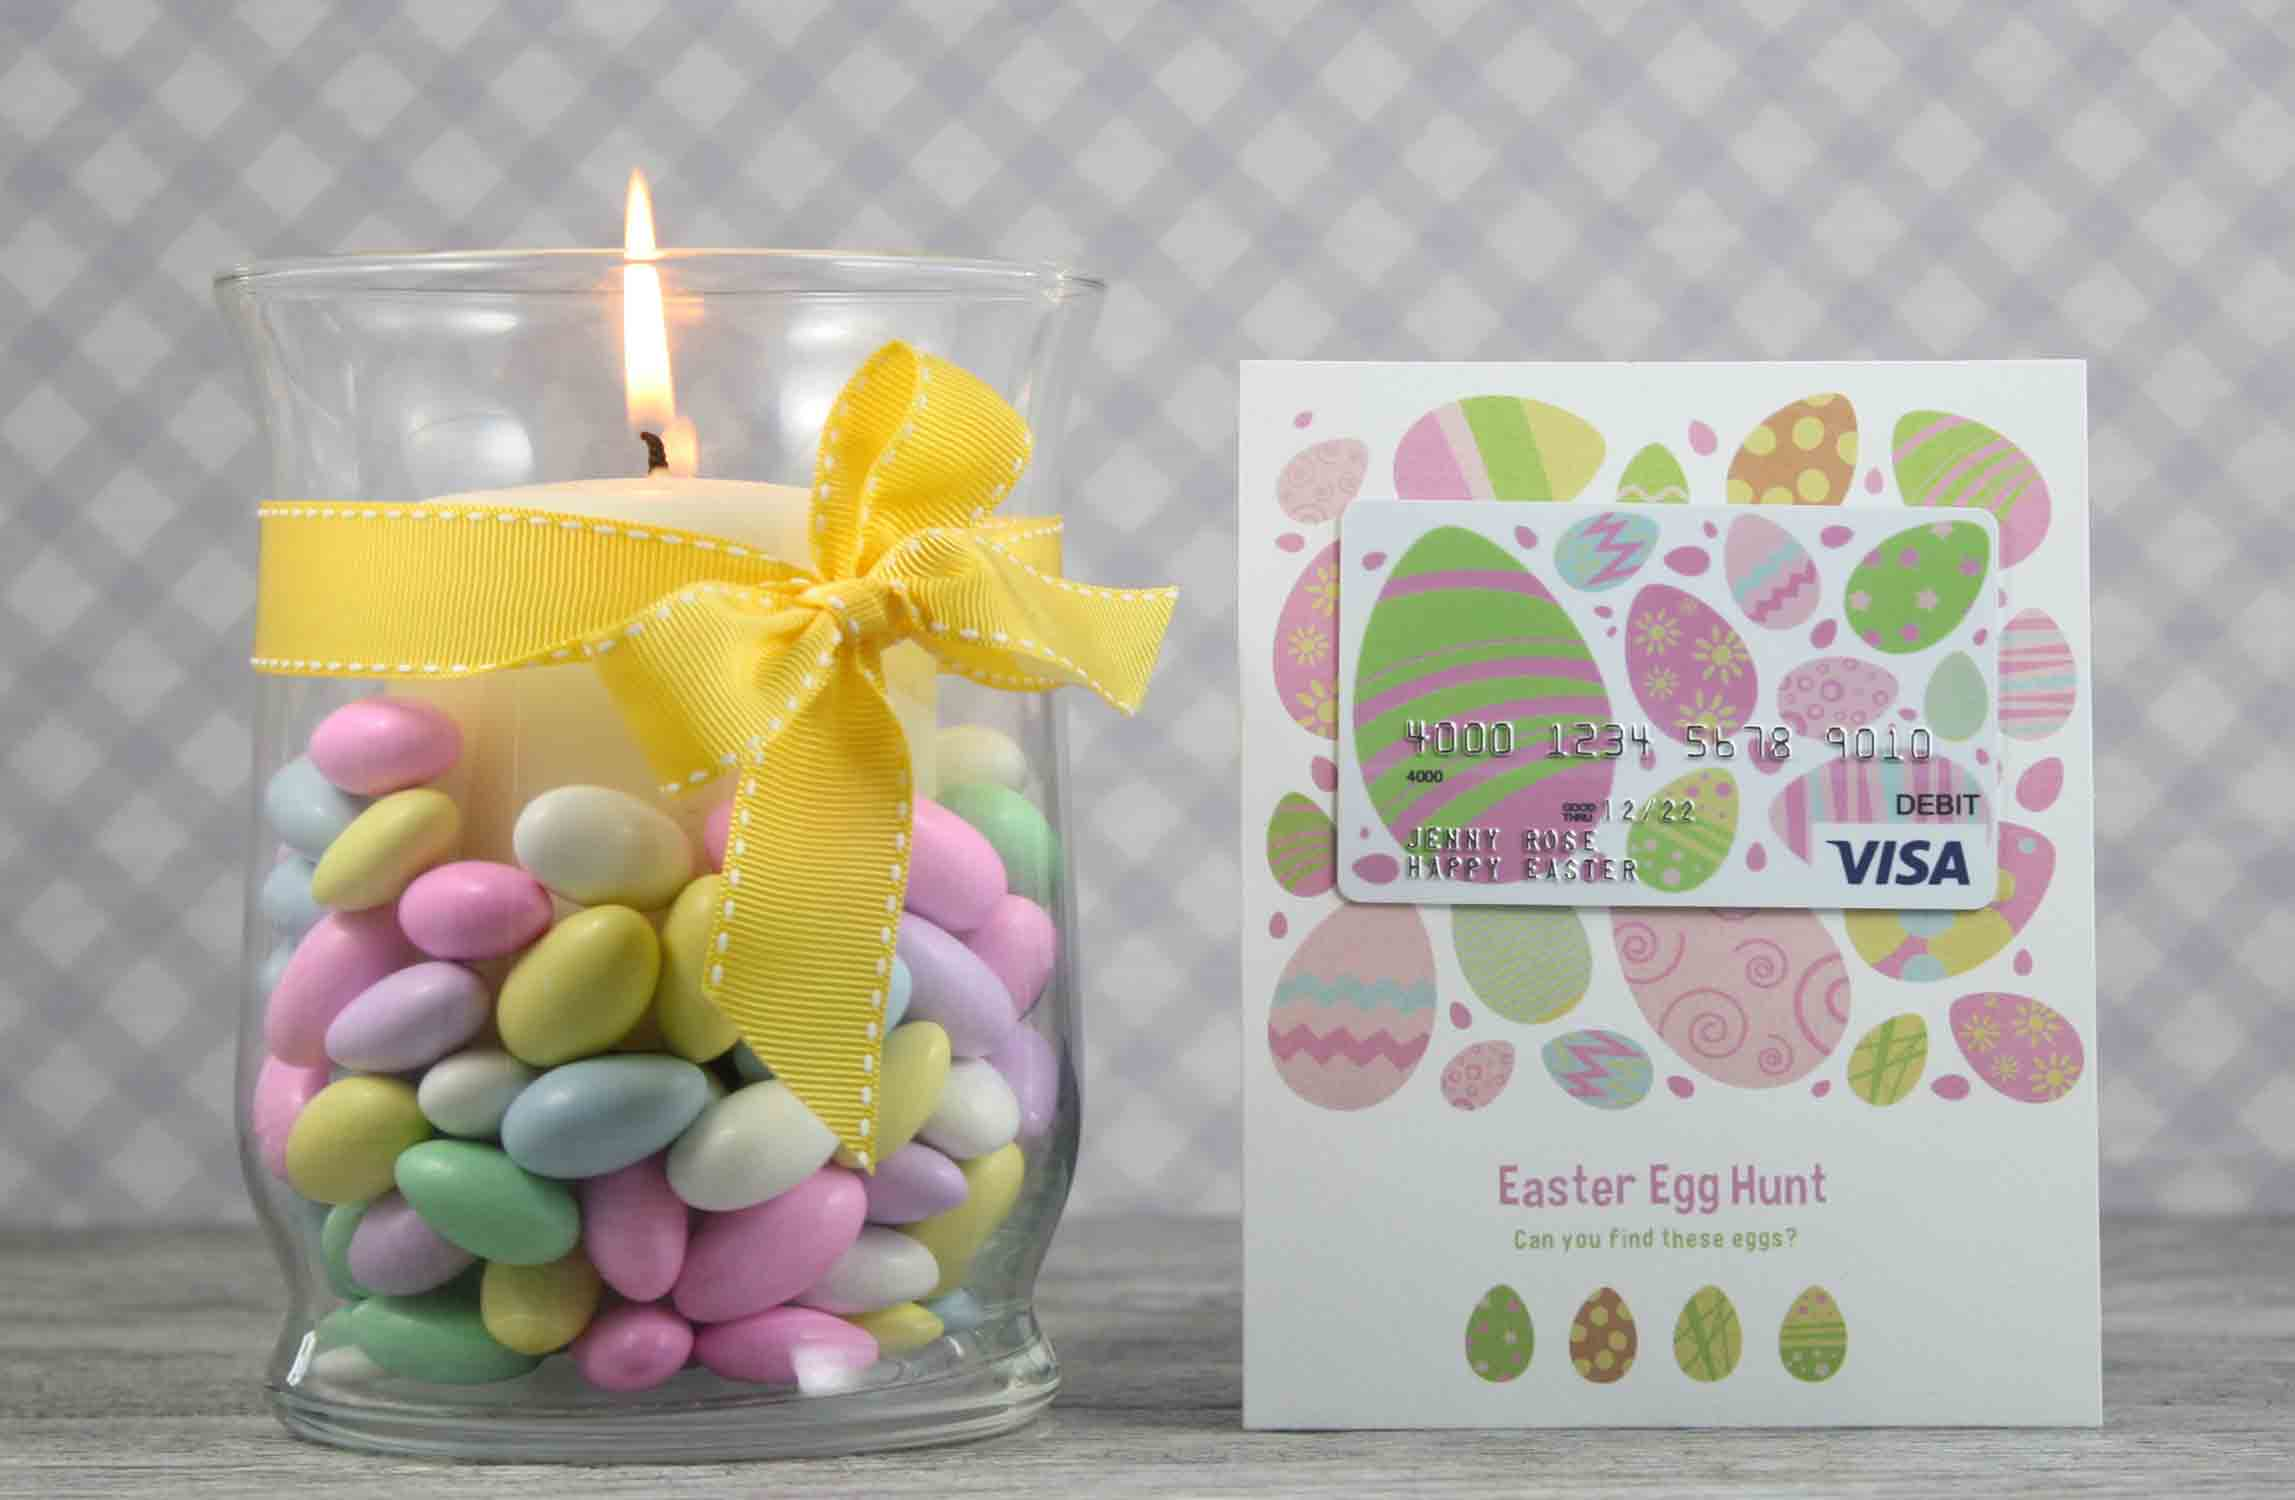 Free printable gift card holder is an easter egg hunt gcg easter egg hunt gift card negle Choice Image